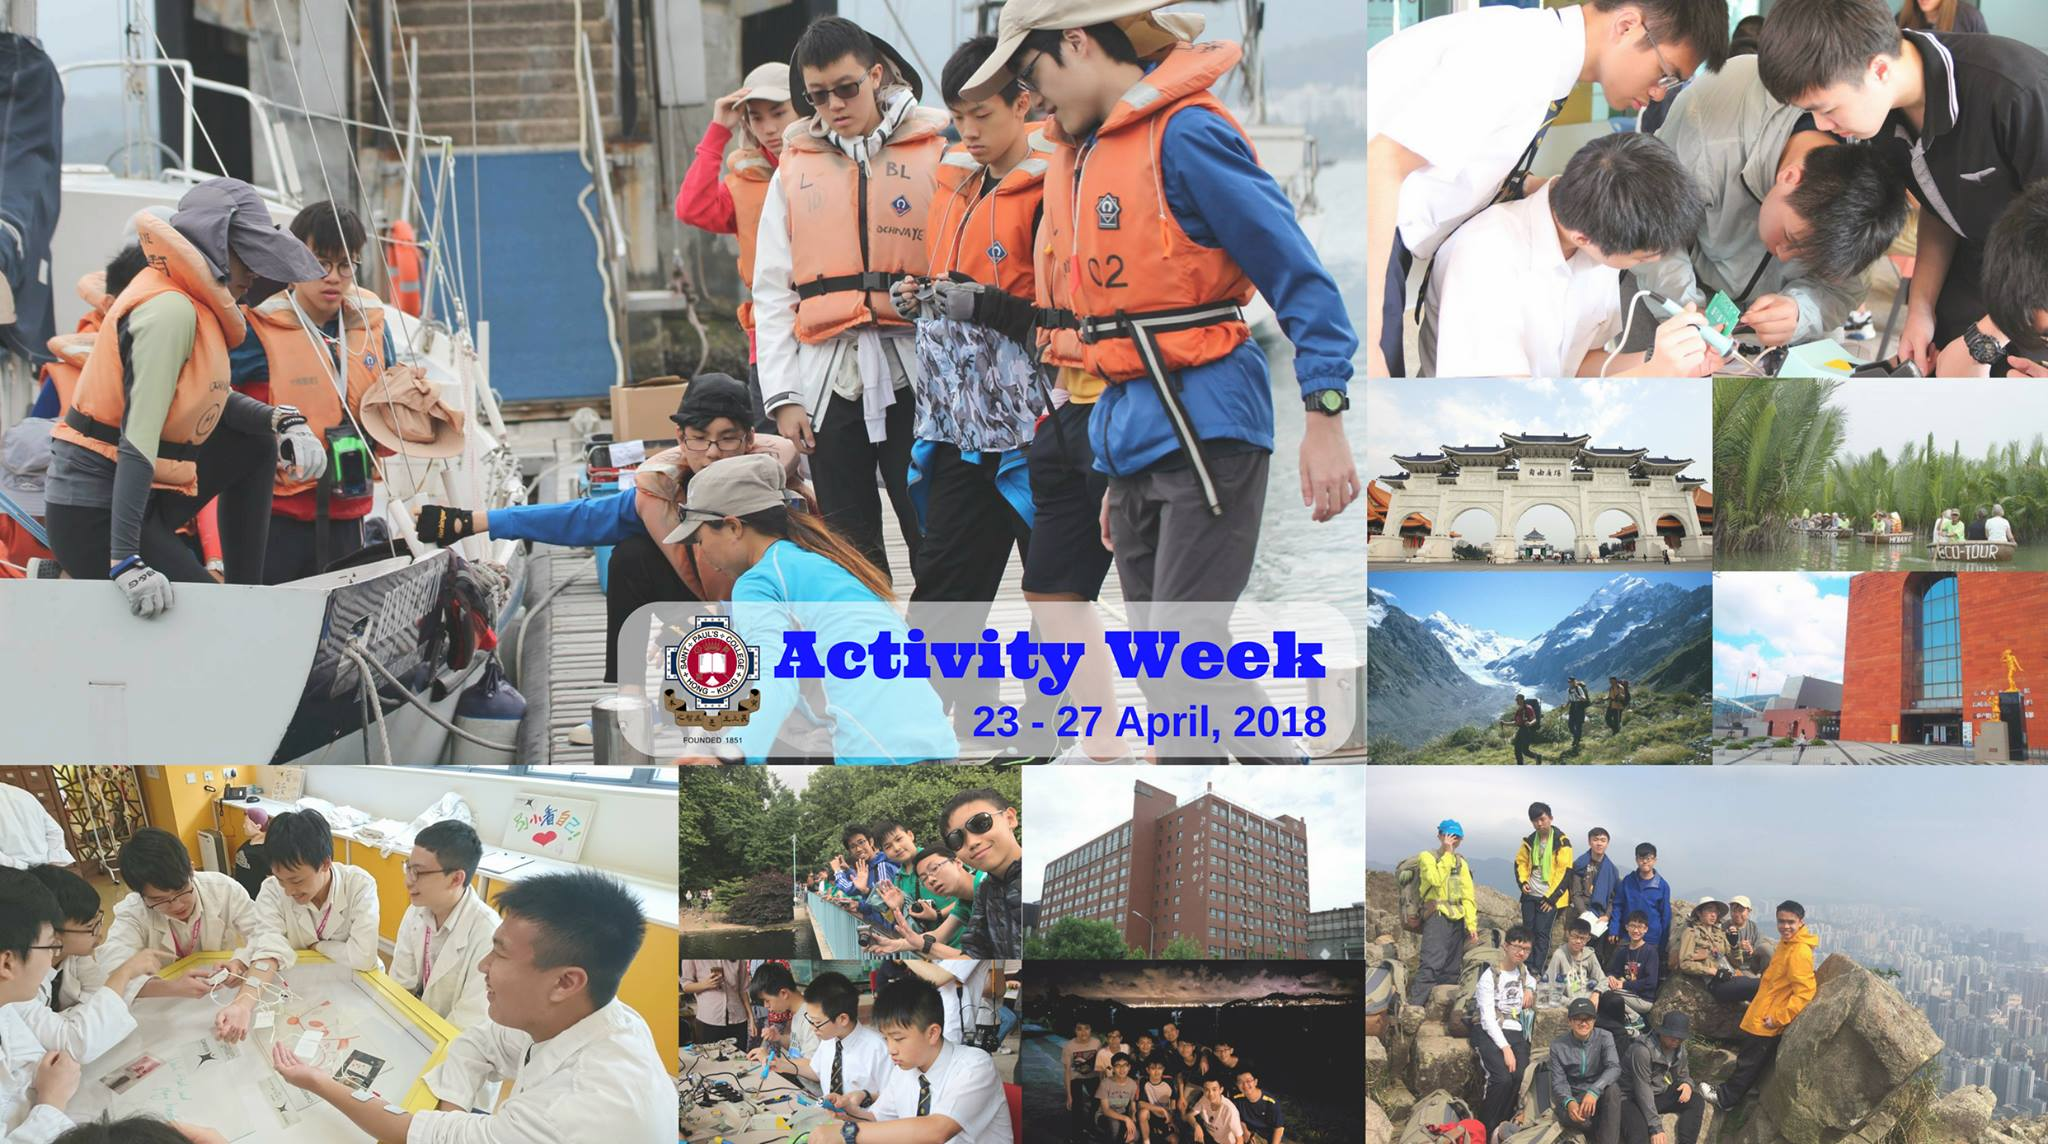 Activity Week for Forms 1 to 4